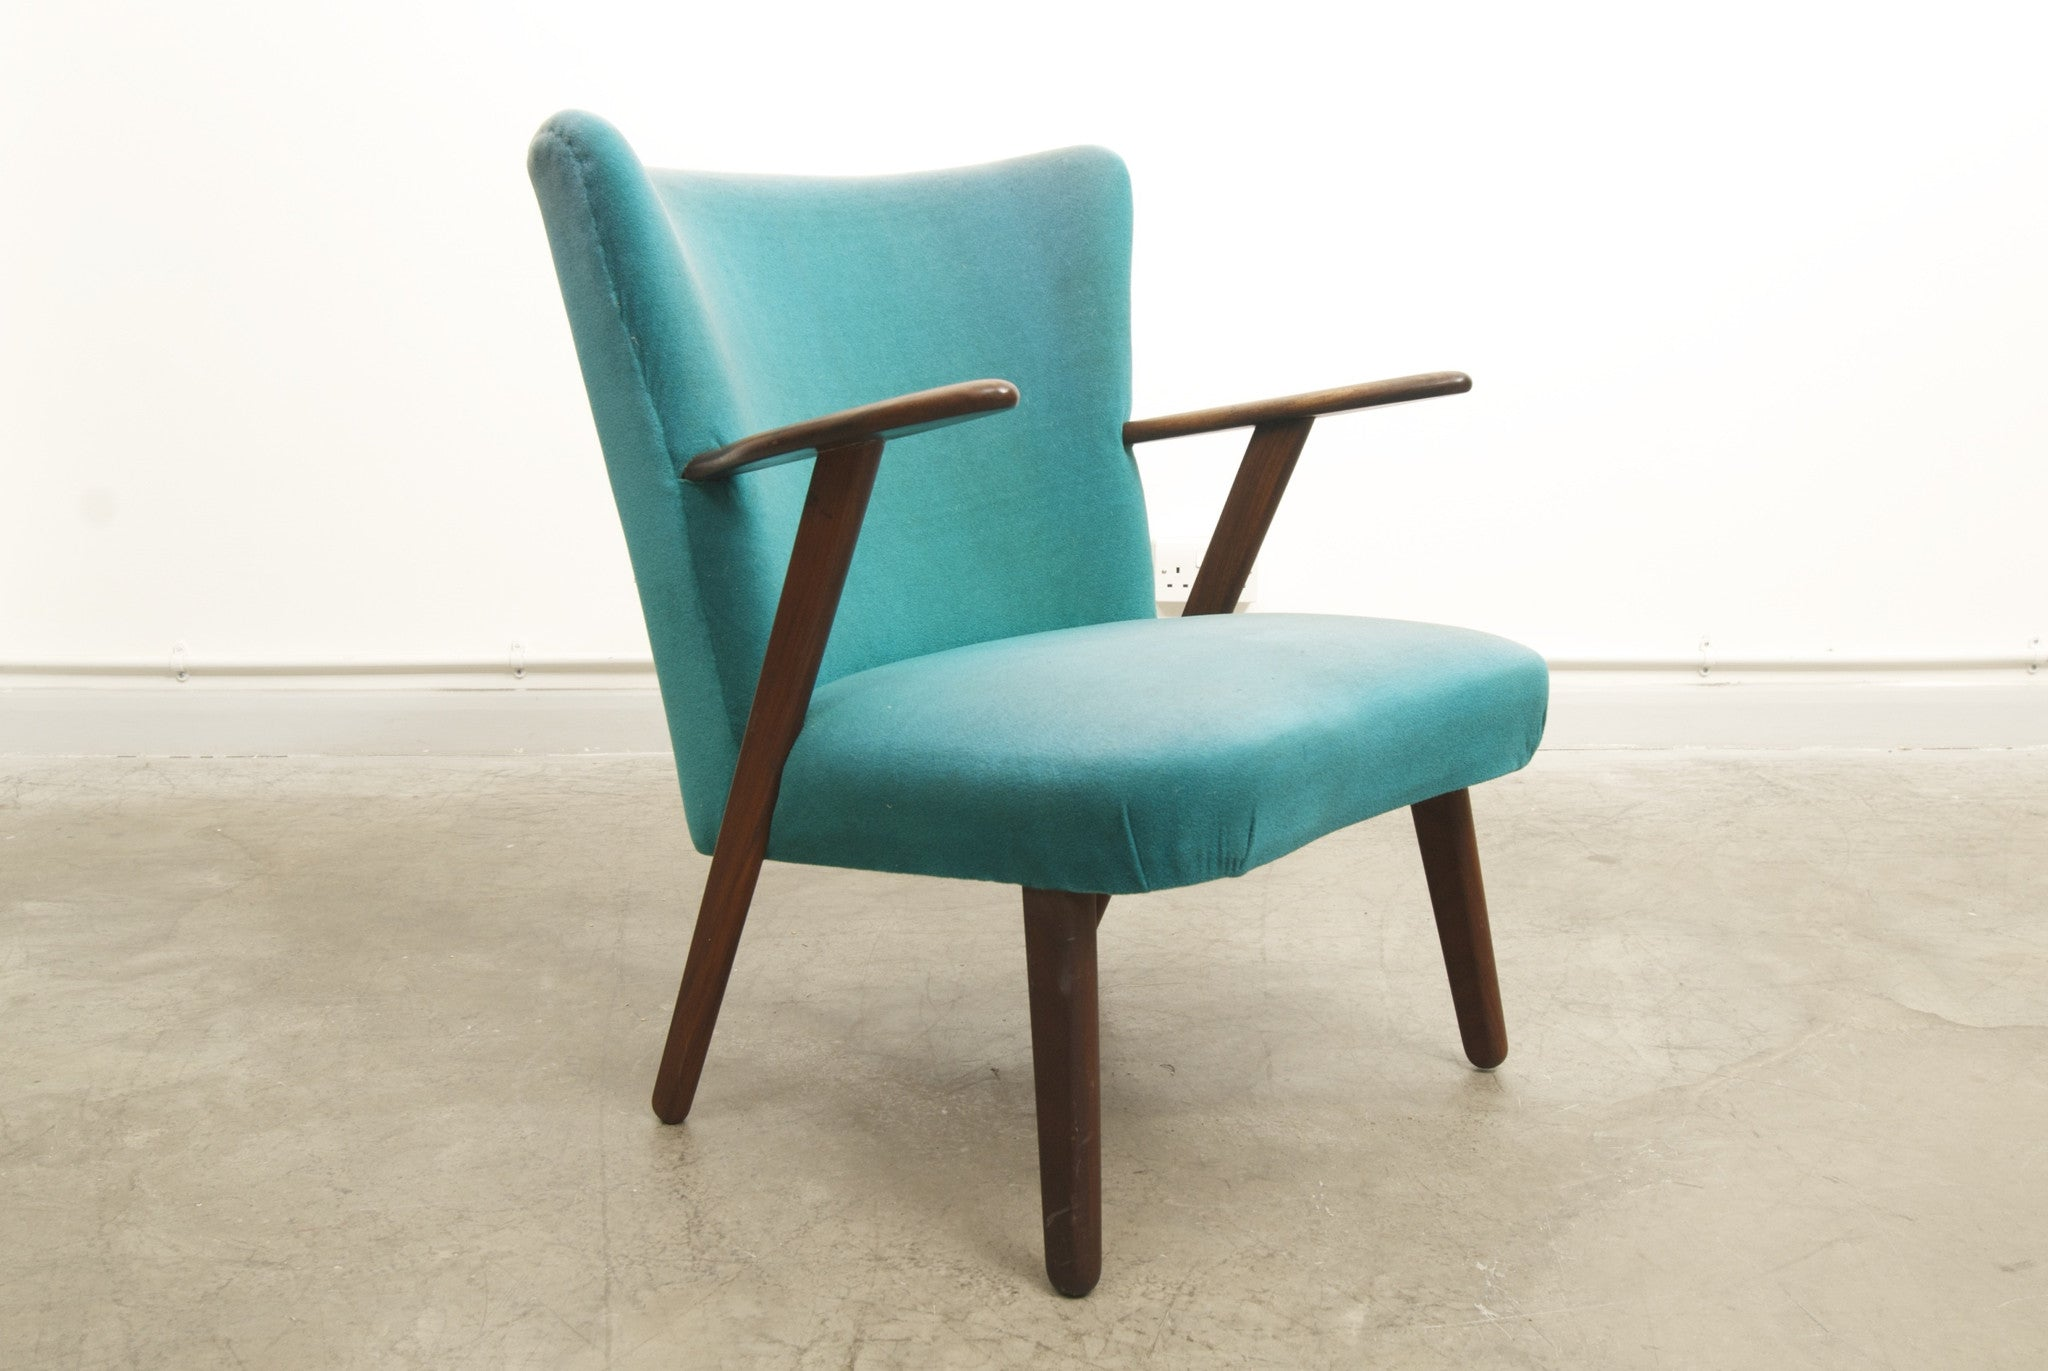 Teak occasional chair no. 1